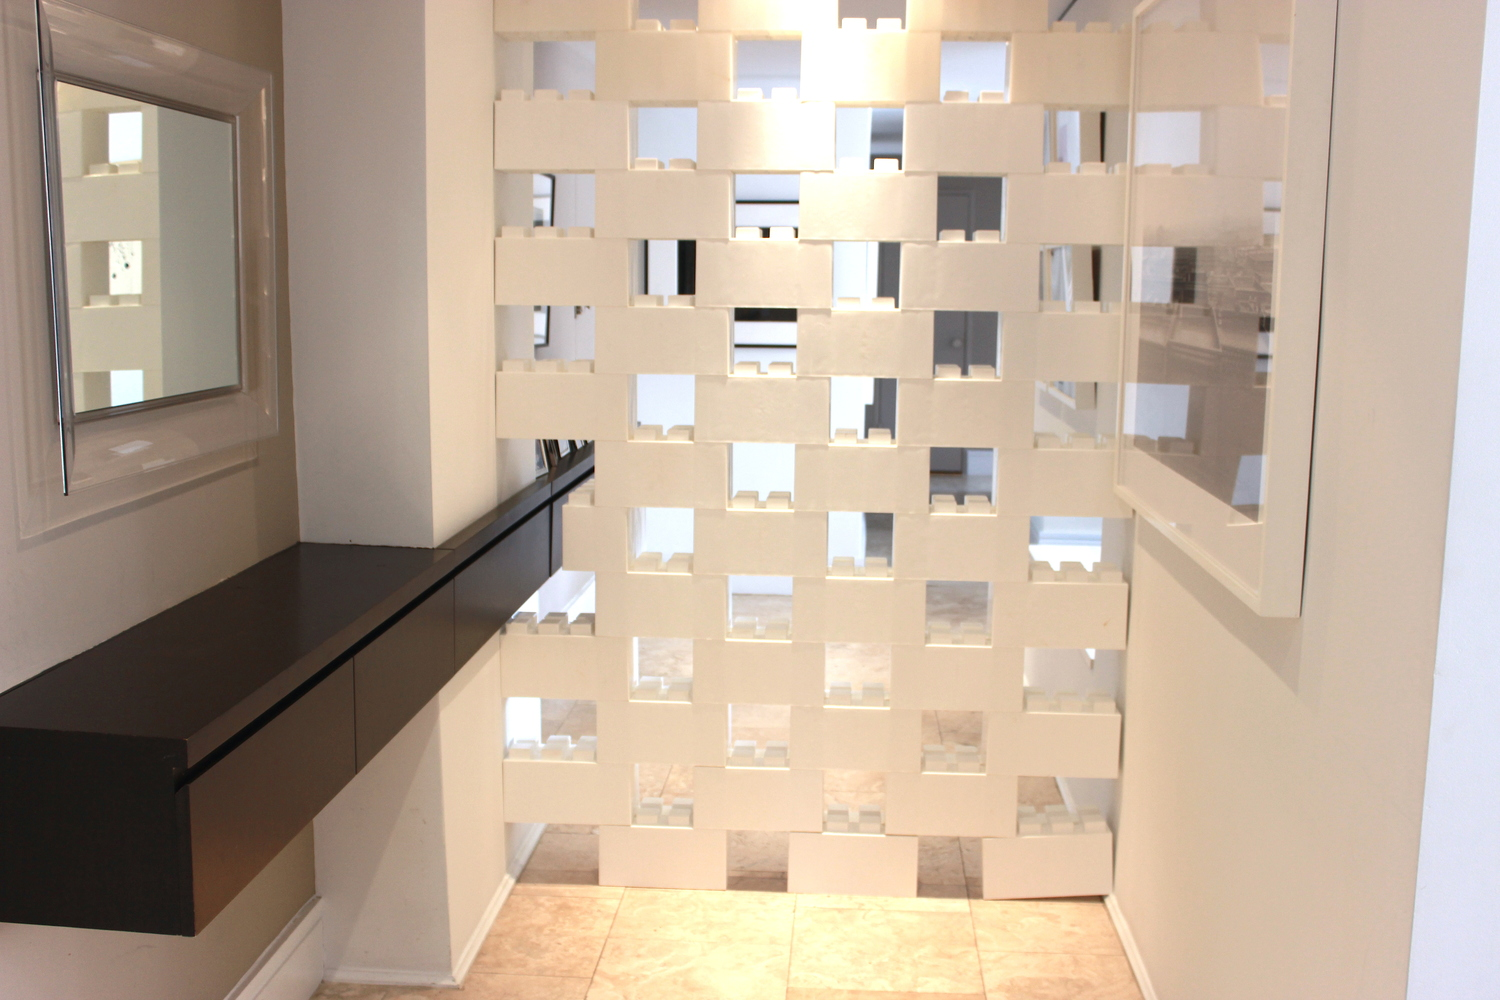 A white divider wall made of staggered EverBlocks, which are basically life-size LEGOs.